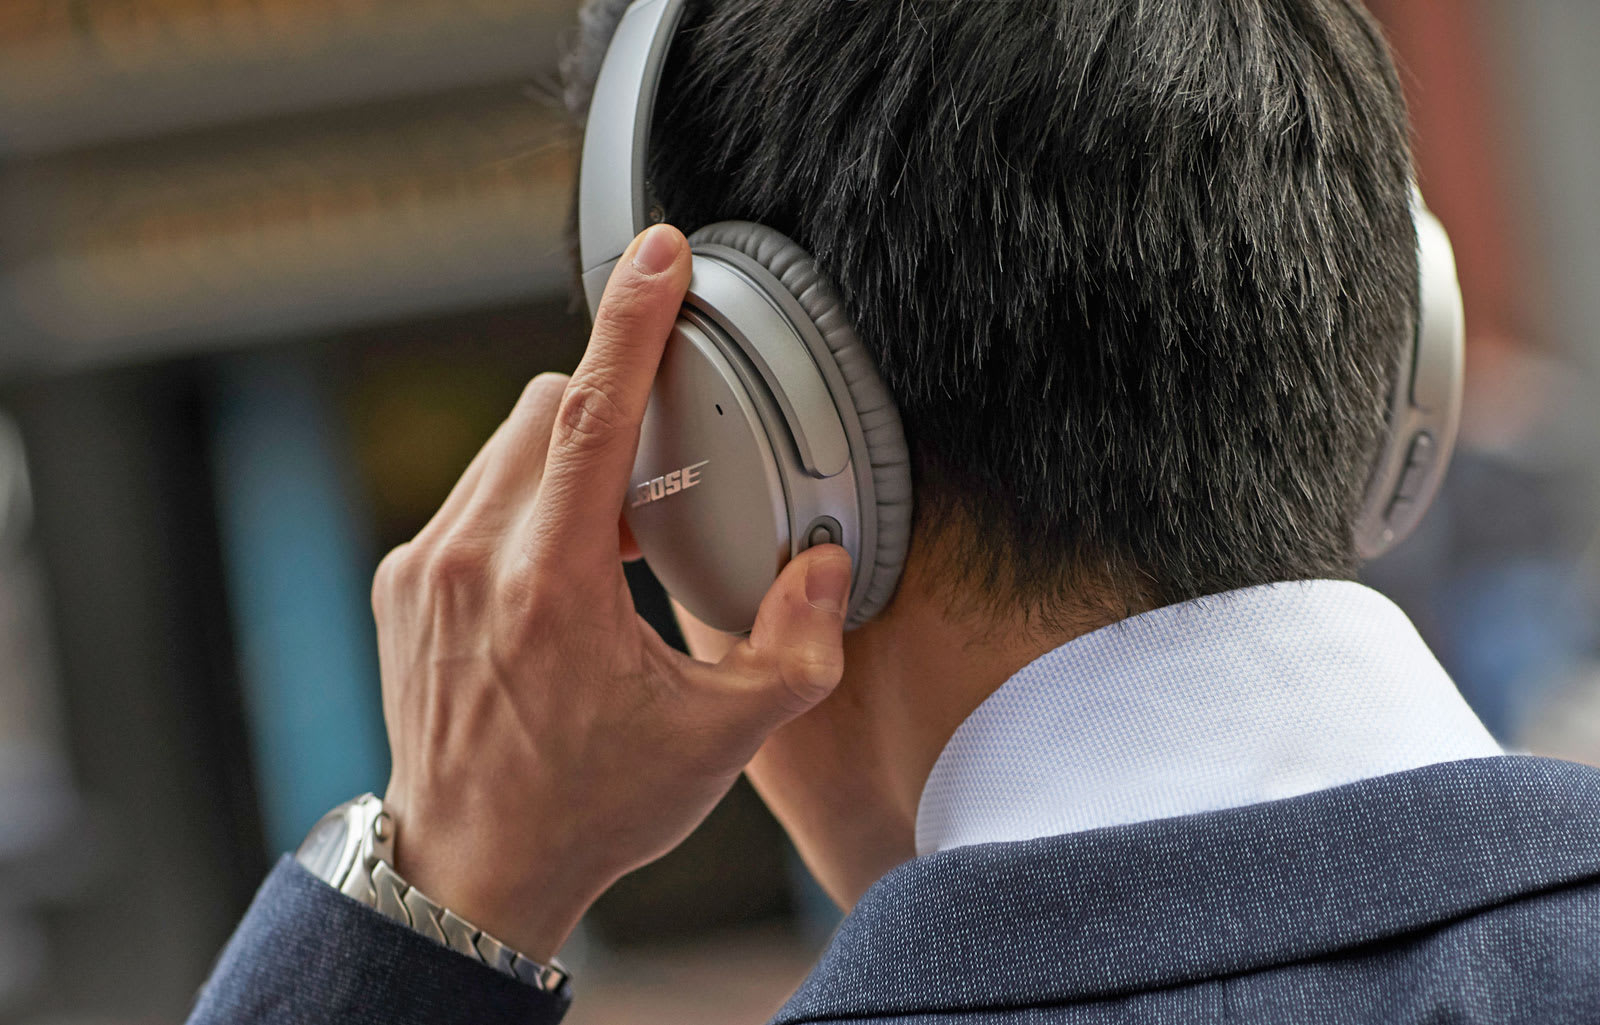 99459642e95 Bose. Last week, we reported that Bose's QuietComfort 35 II Bluetooth  headphones might include Google Assistant.